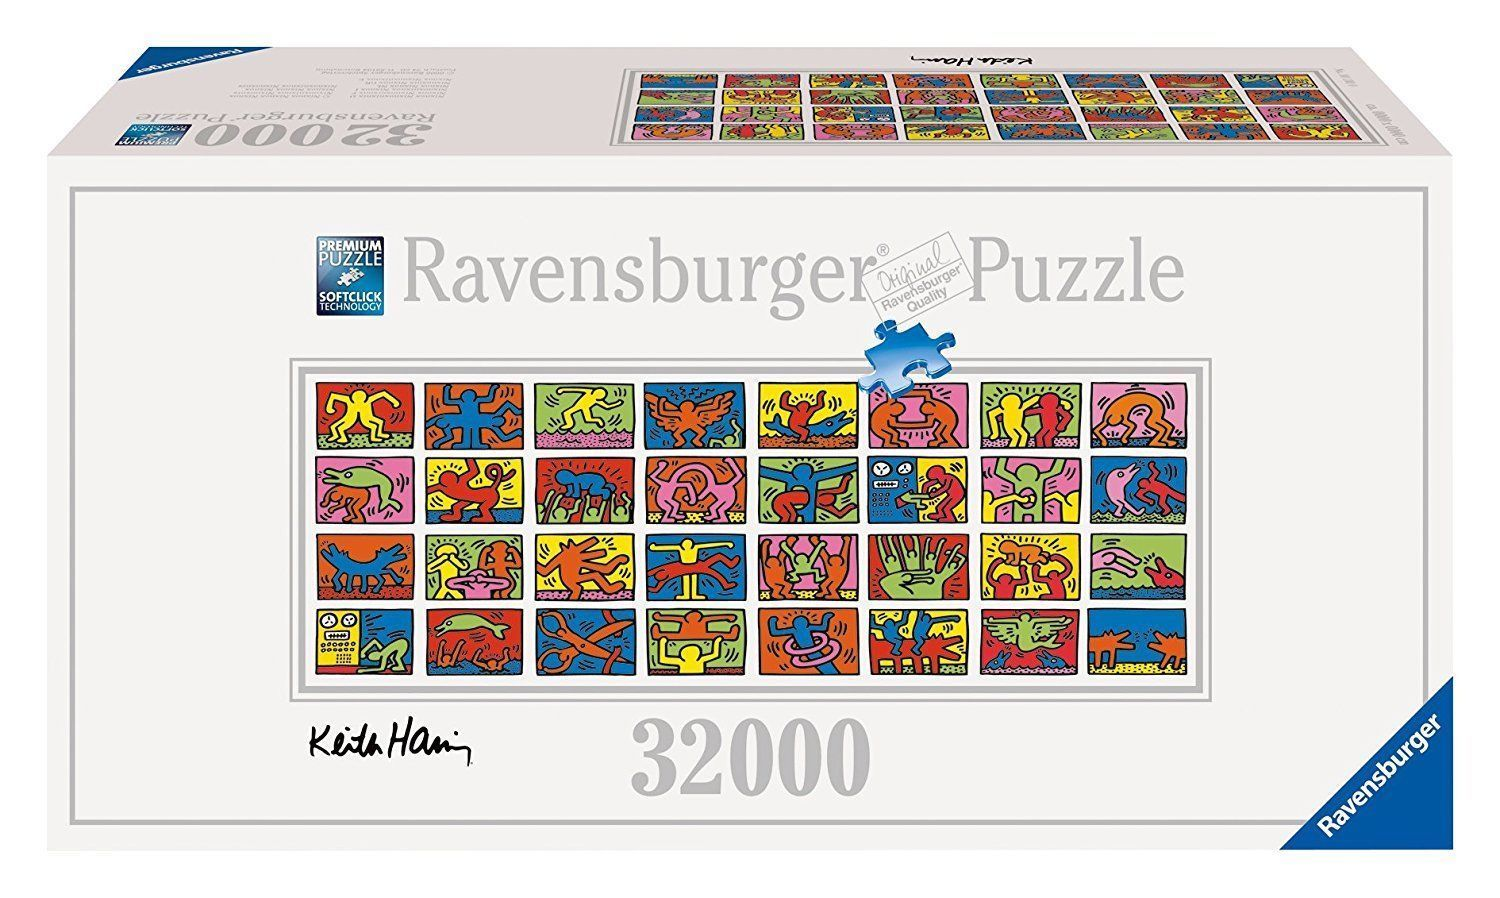 Keith Haring Bettwäsche 32000 Teile Ravensburger Puzzle 17838 Keith Haring Double Retrospect 32 000